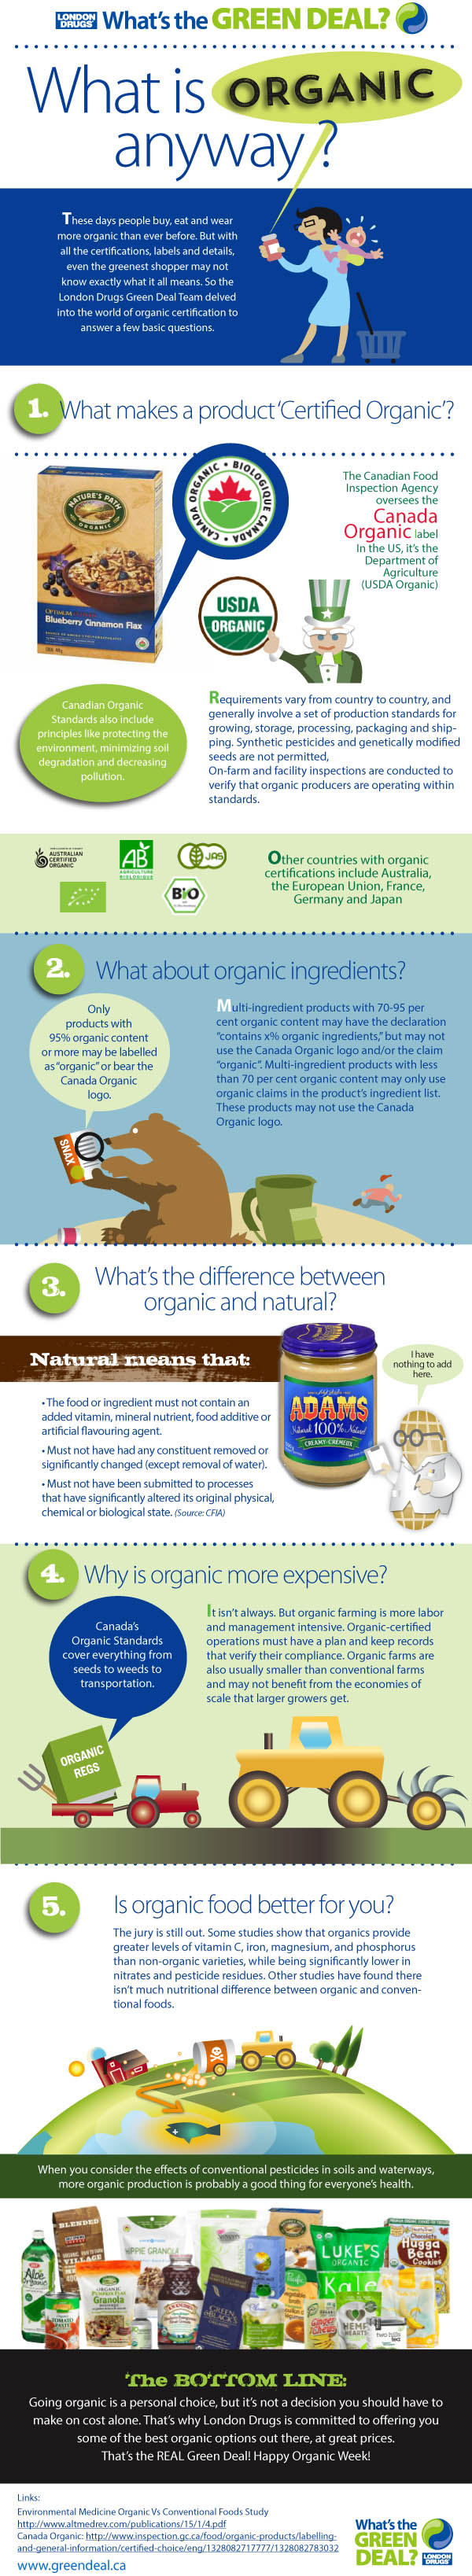 Organic Questions and Answers Infographic for Canada Organic Week